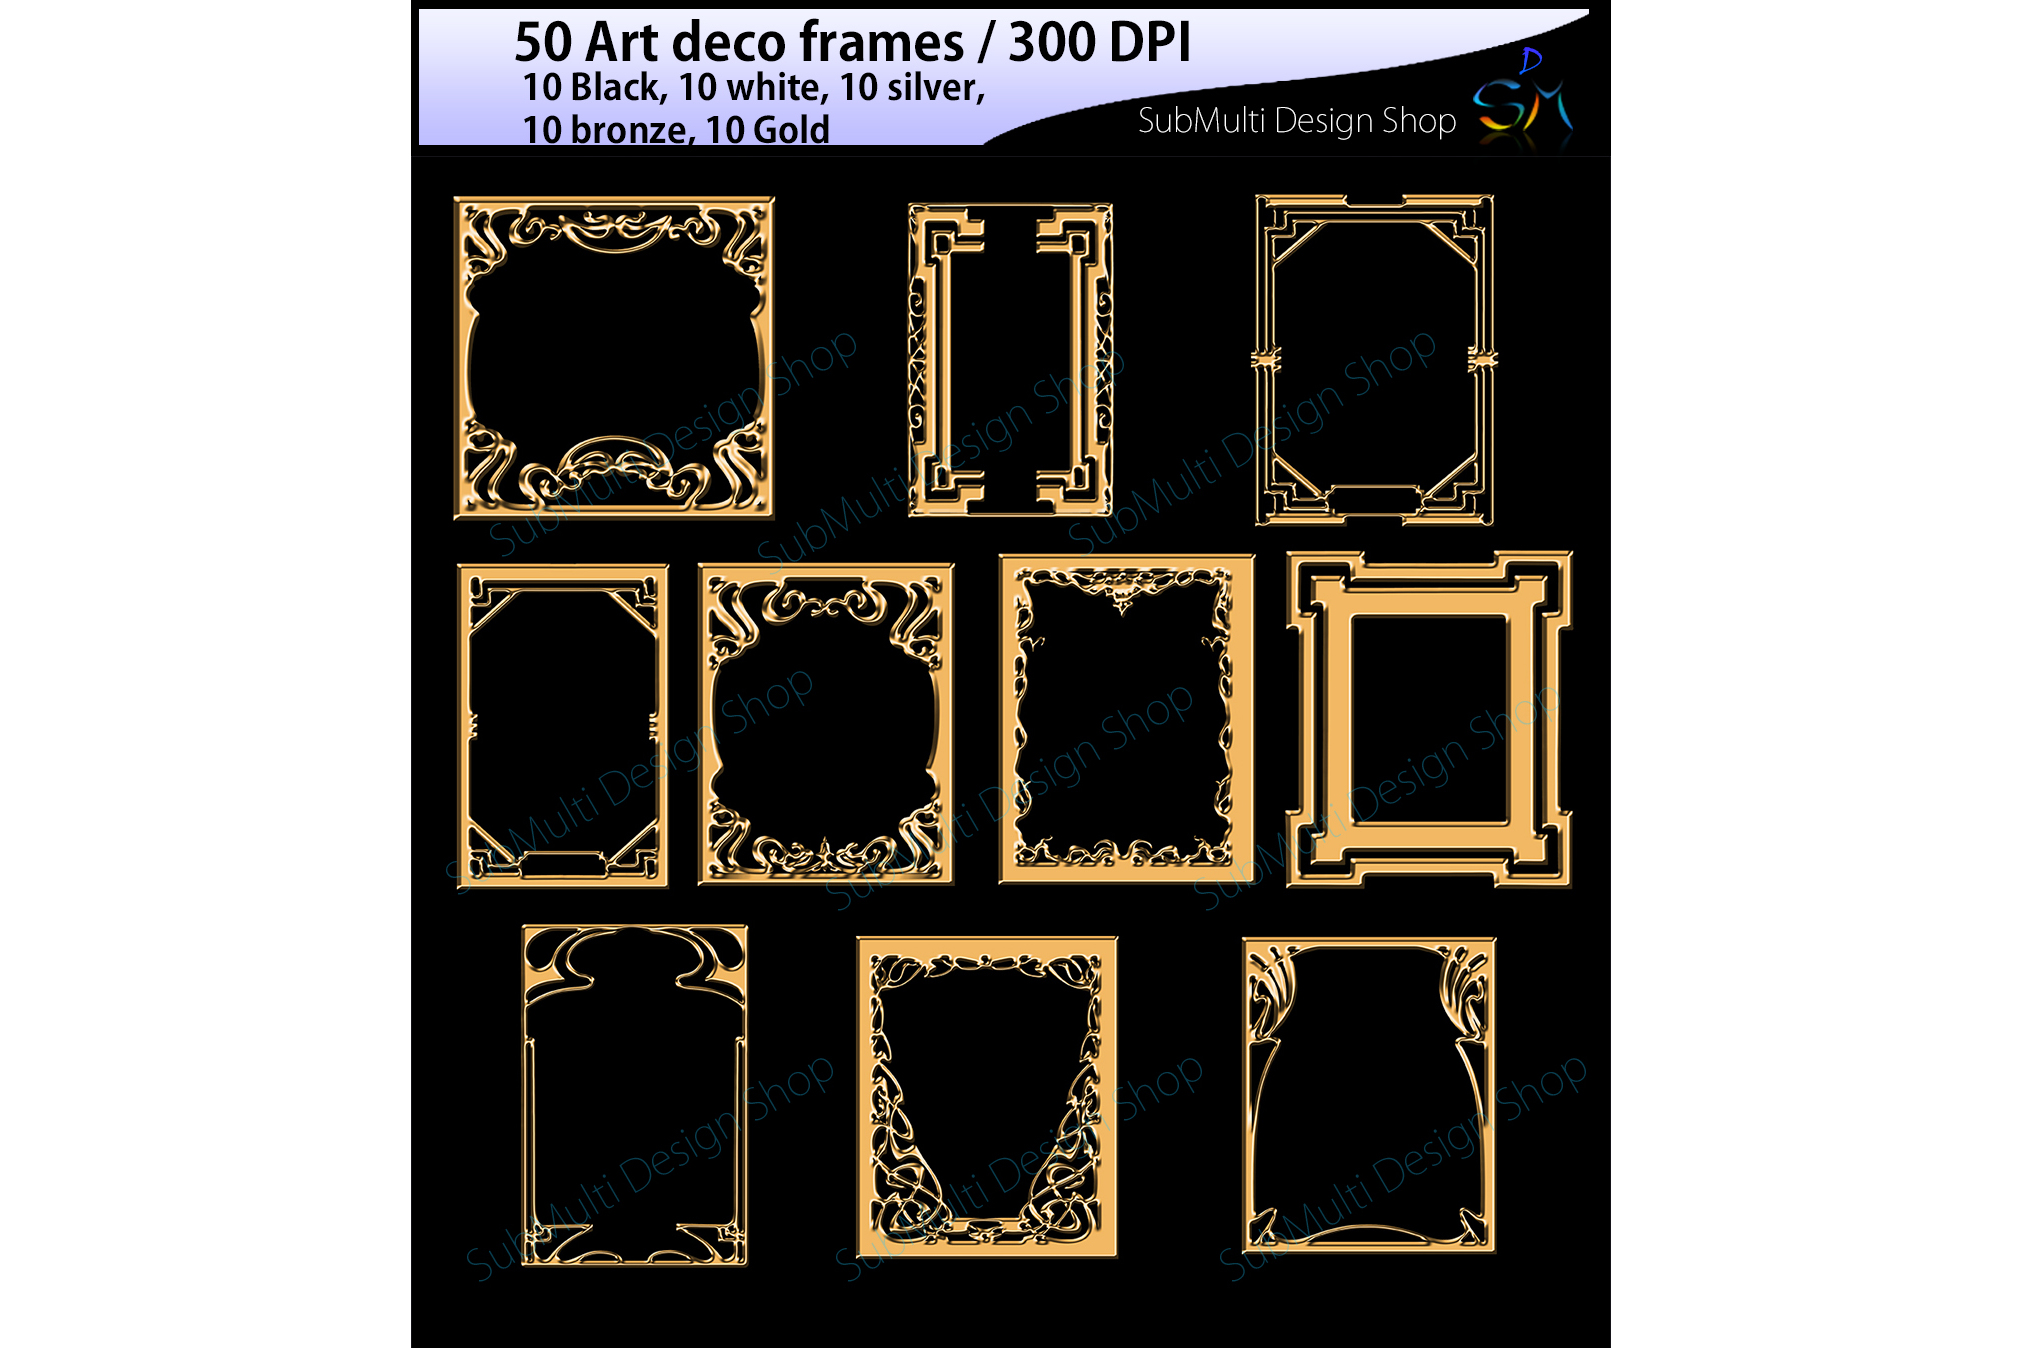 art deco frames / art deco frames clipart / art deco frames silhouette / art deco gold frames / art deco silver frame / High Quality example image 3